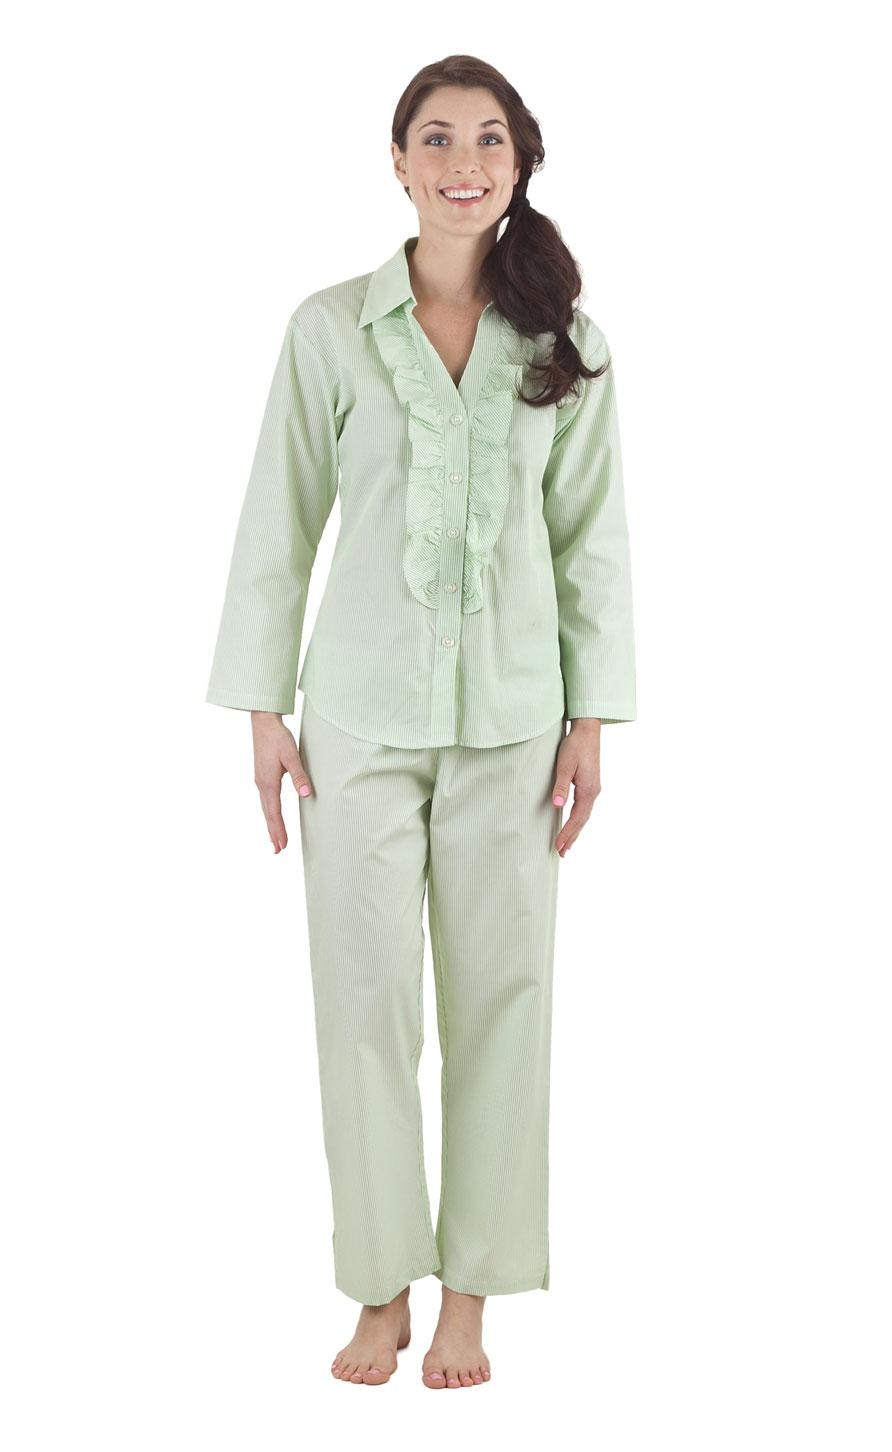 Winter Sleepwear Pajama Shirt For Women – Night Dress 15 ...